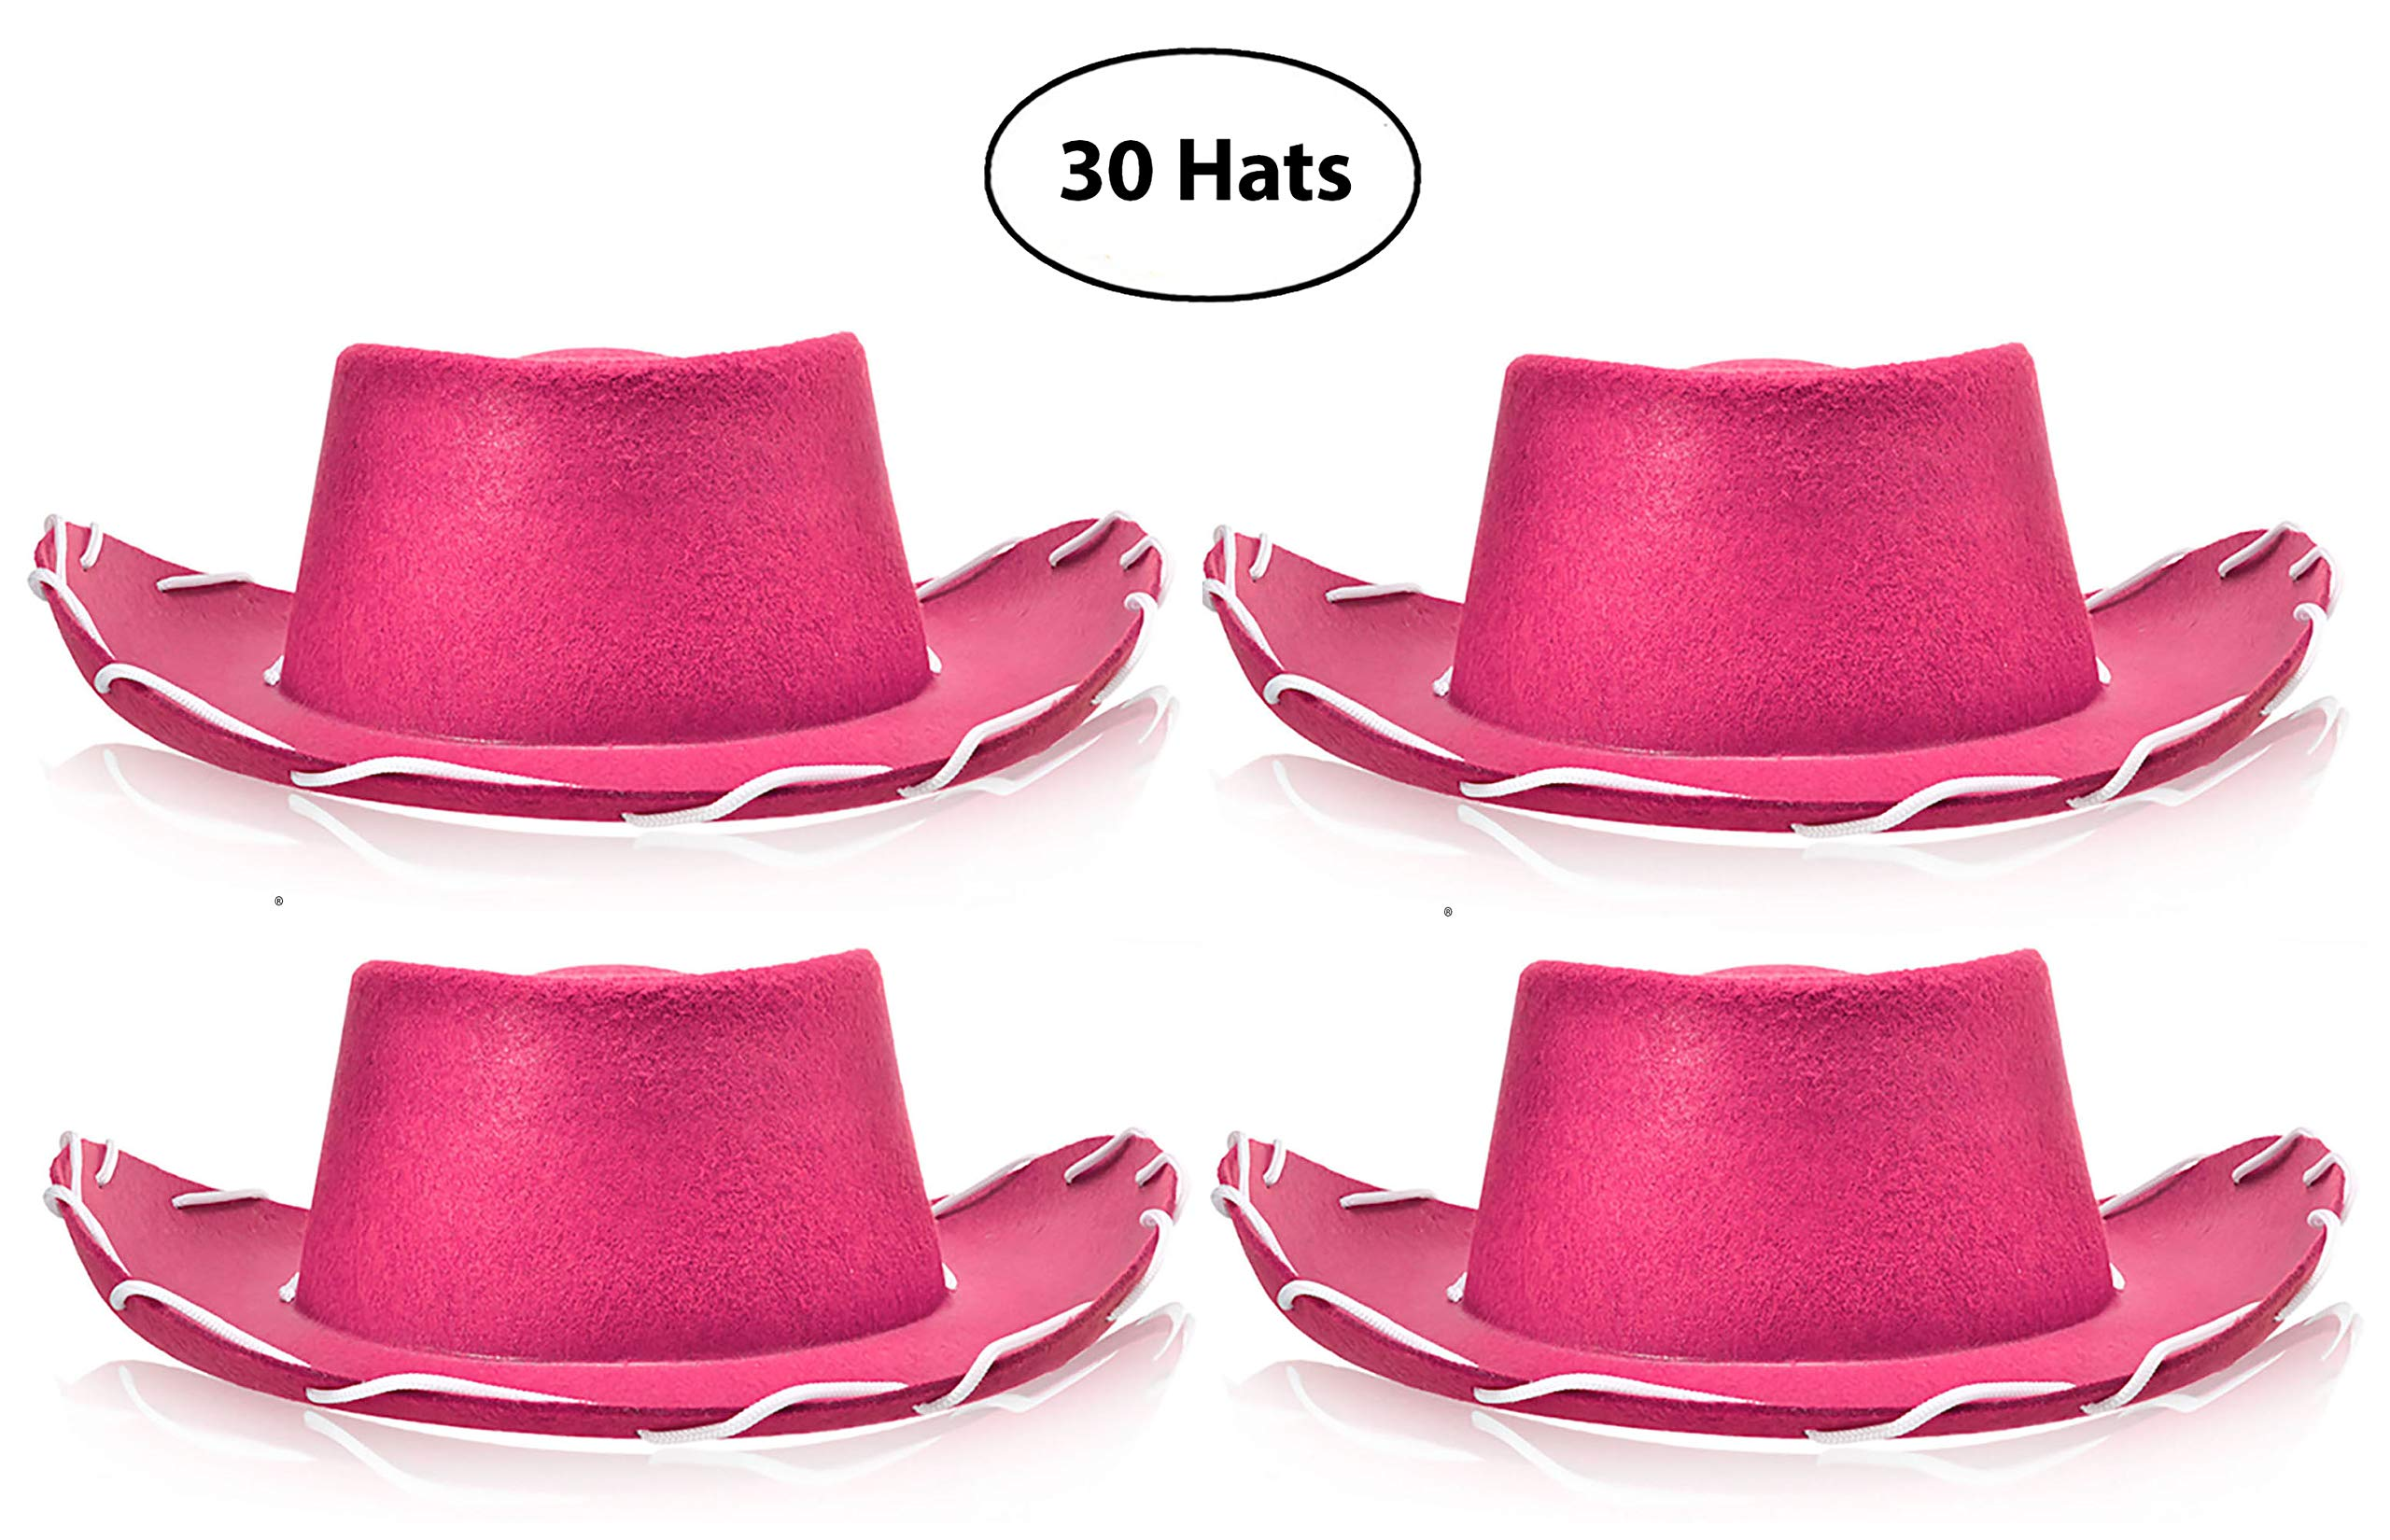 Bottles N Bags 30 Pink Children's Western Style Woody Felt Cowboy Hats for Pretend Play (Jumbo Pack of 30 Hats)